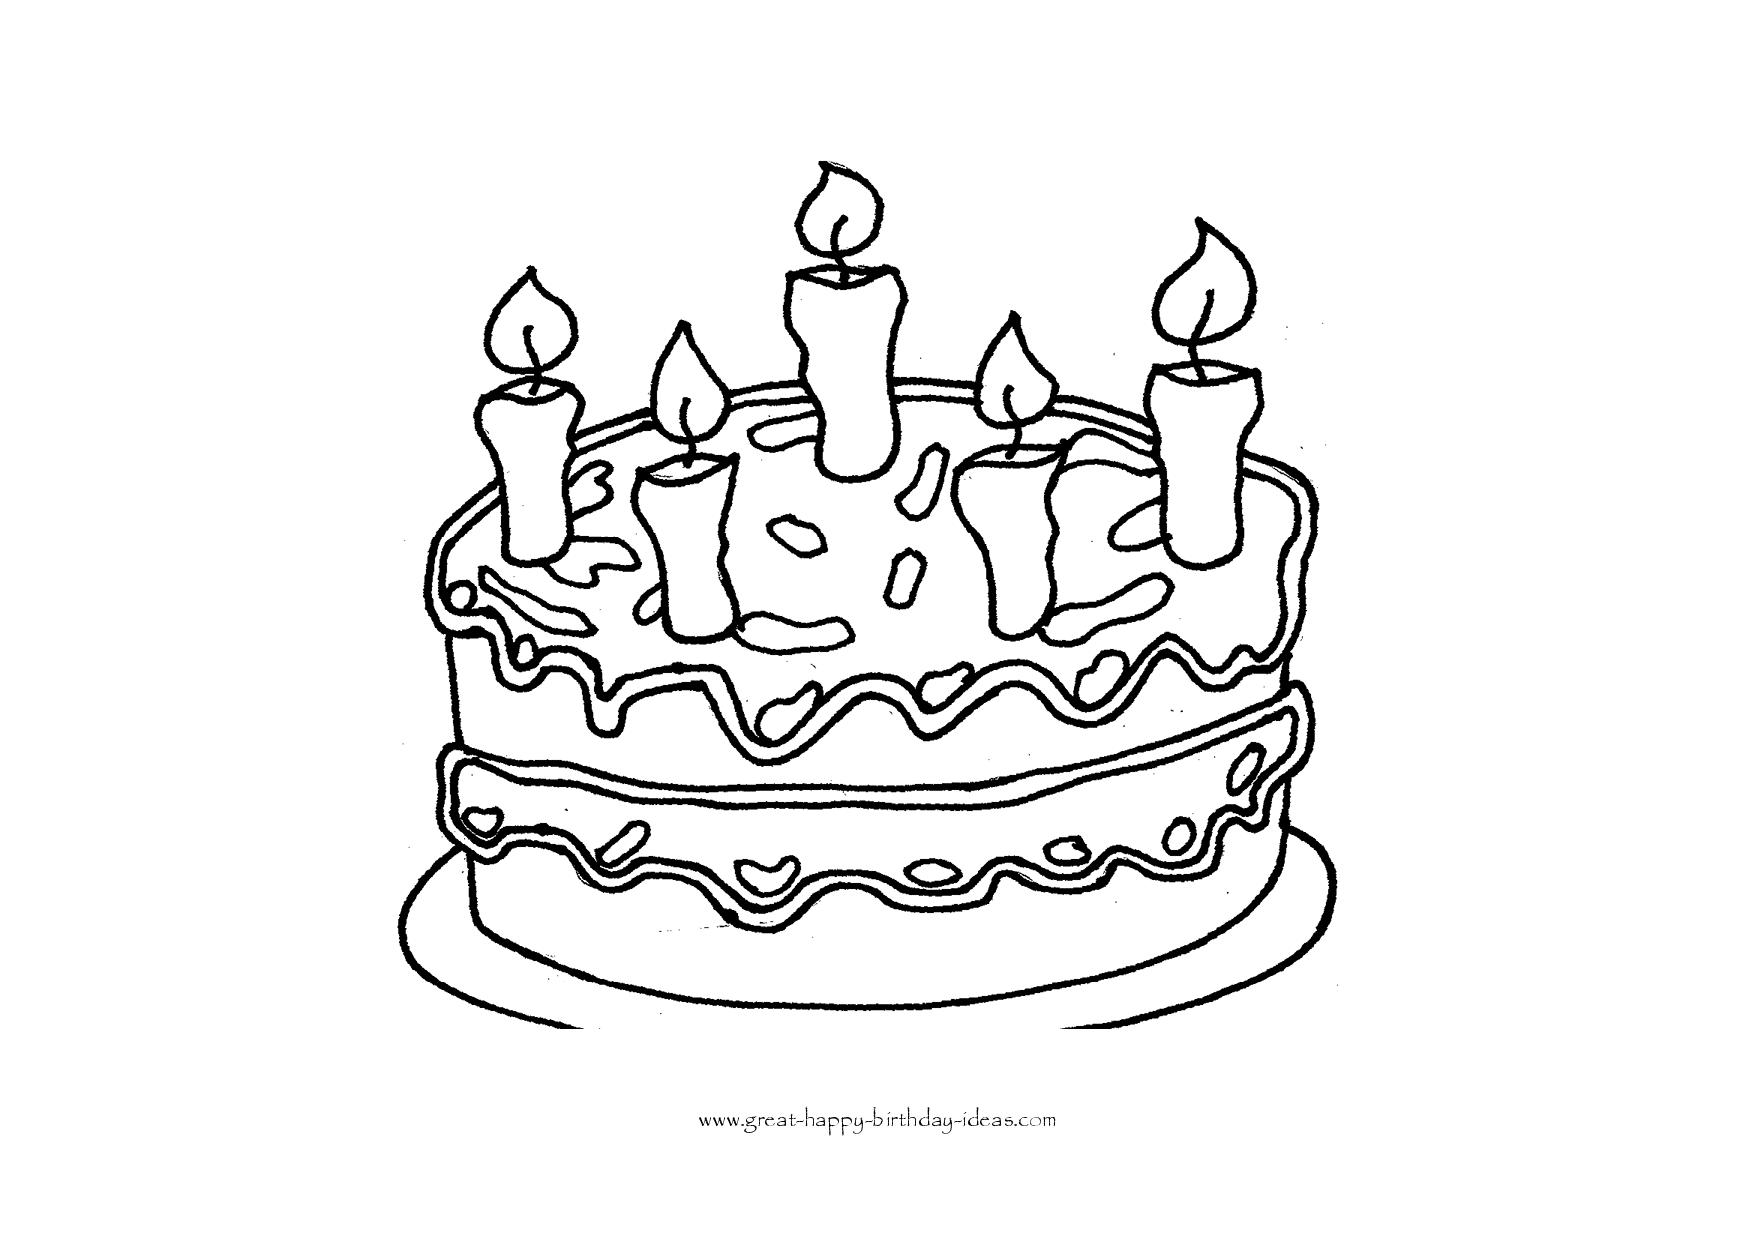 printable birthday cake images birthday cake coloring page at getcoloringscom free images birthday cake printable